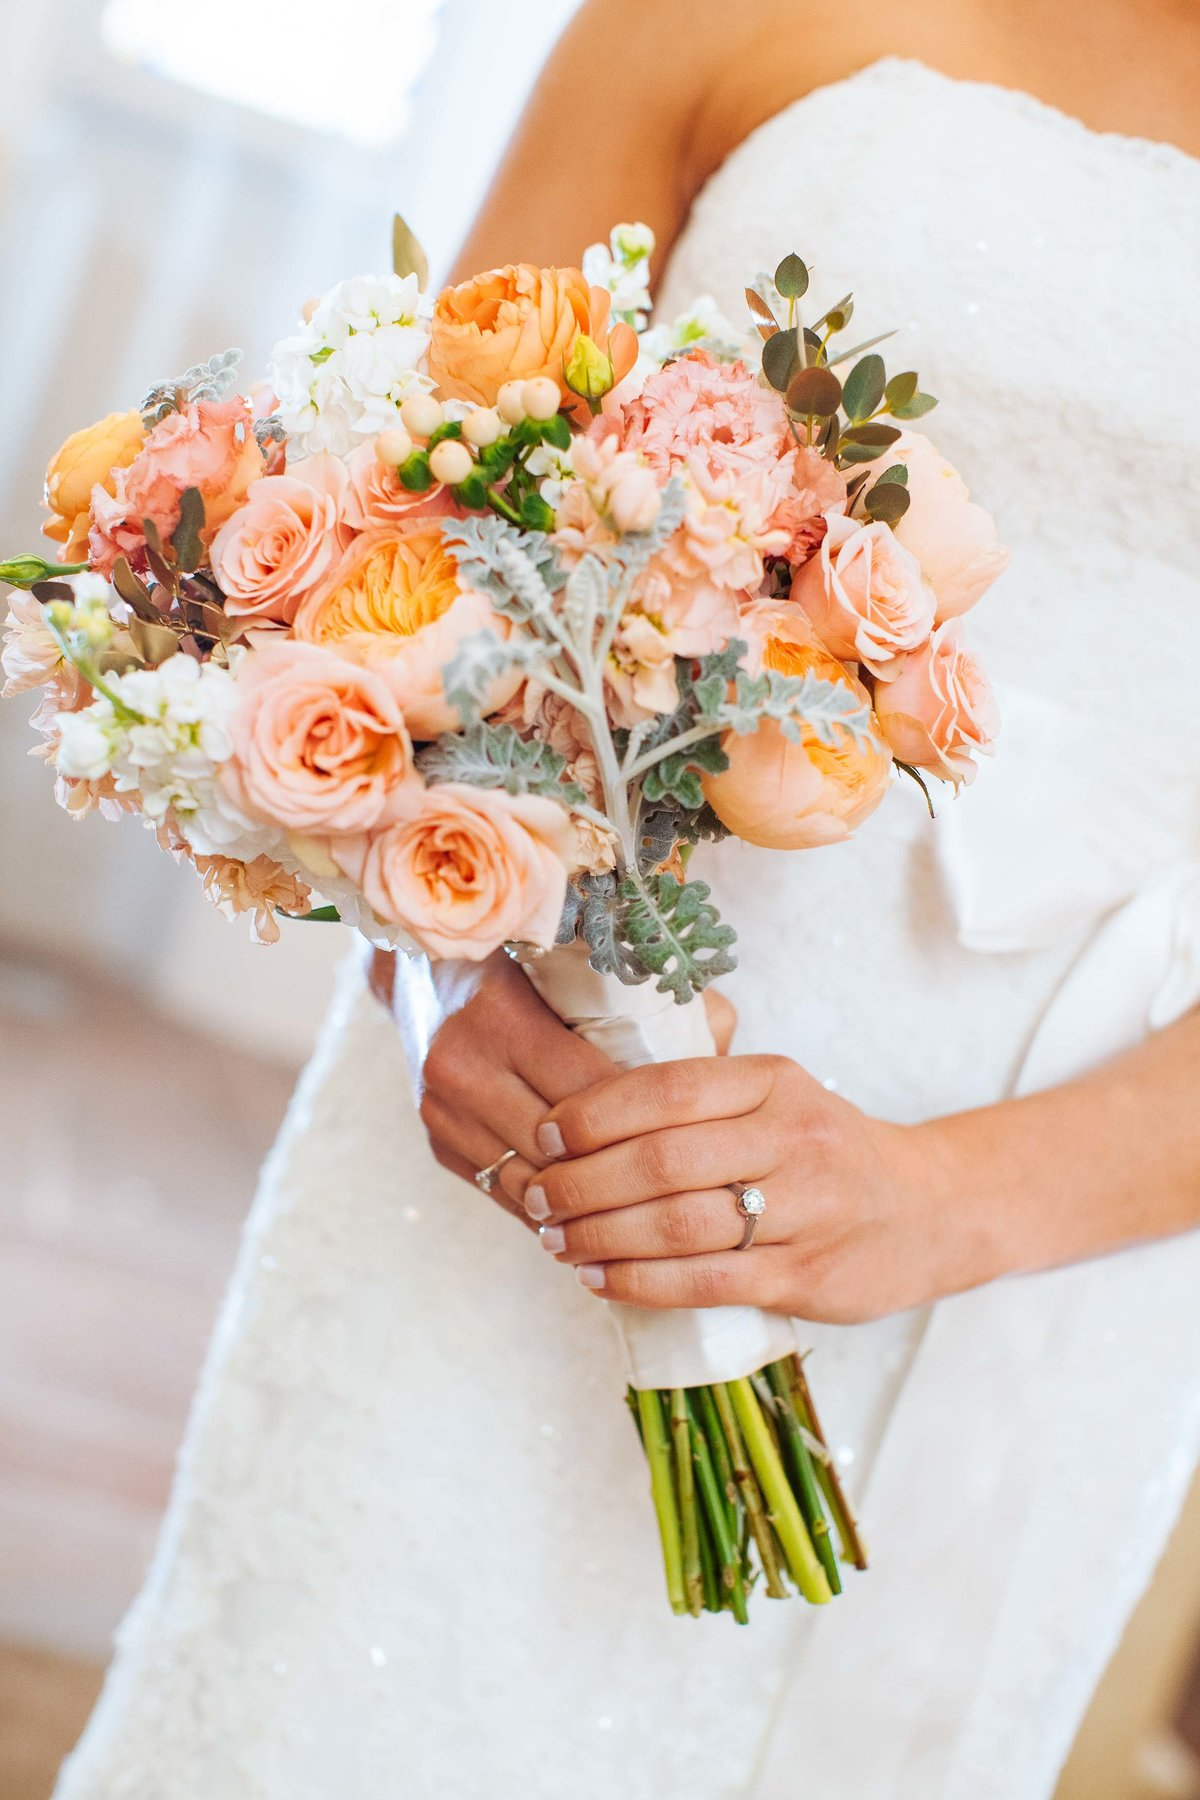 A bride holding her bouquet of flowers.